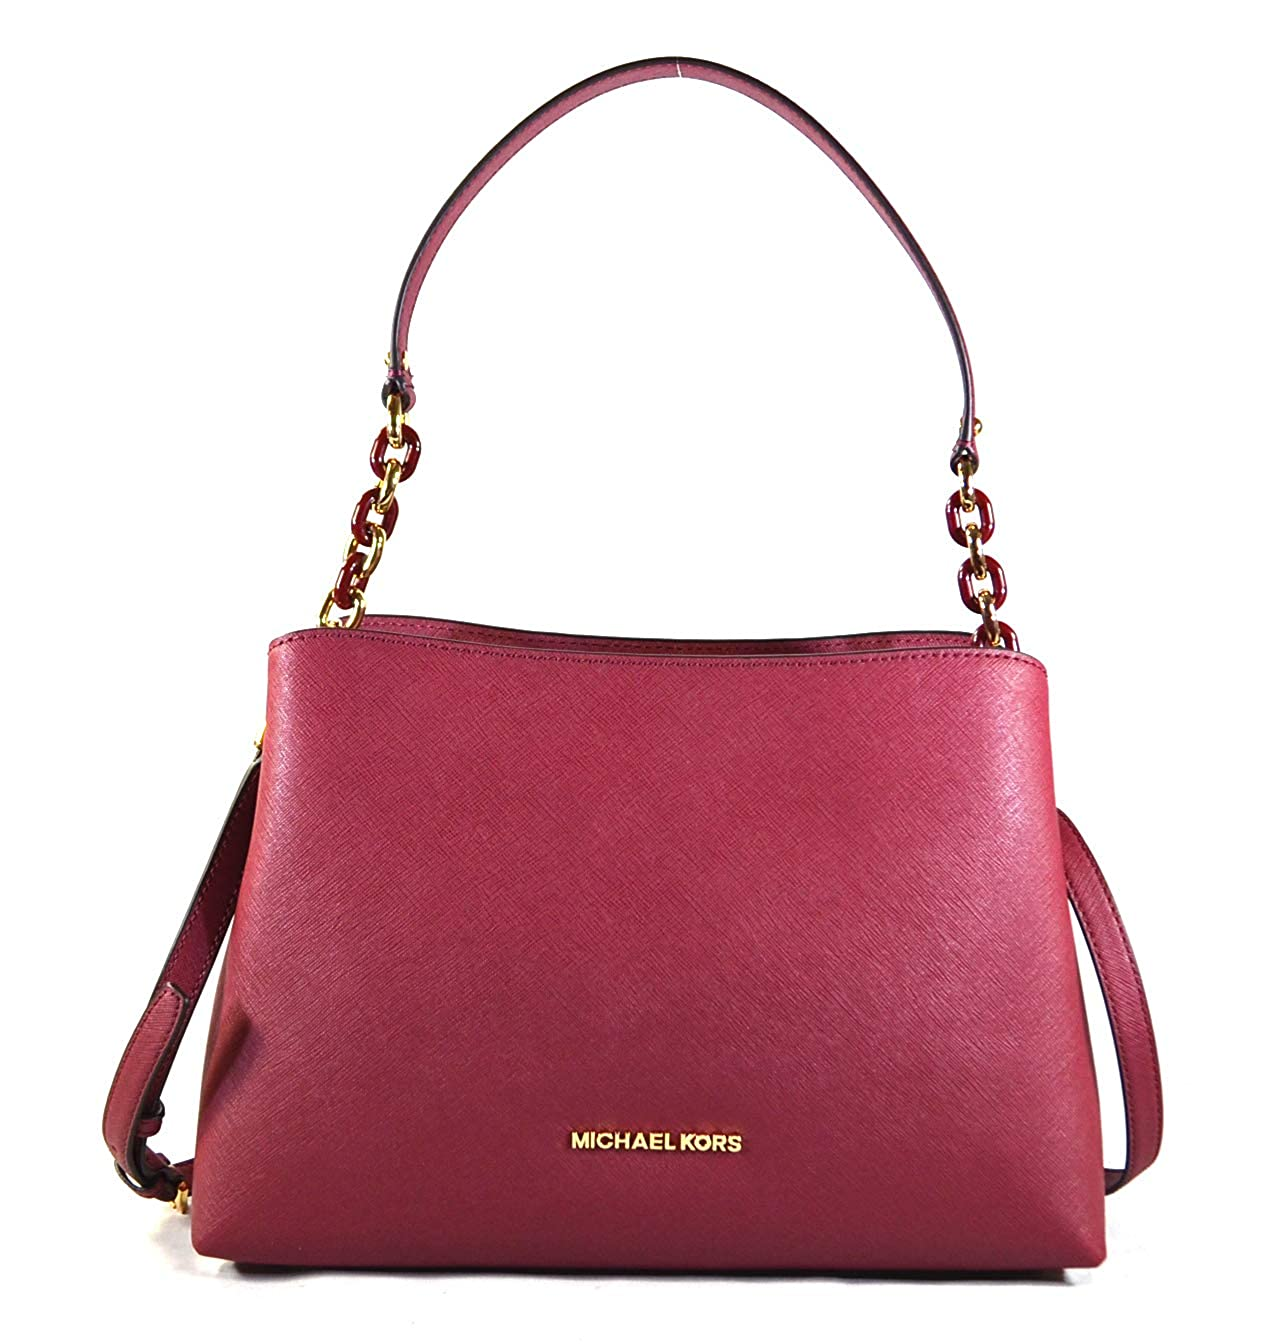 e60fd10c35be3 Amazon.com  Michael Kors Sofia Large East West Saffiano Leather Satchel  Crossbody Bag Purse Tote Handbag (Fawn)  Shoes